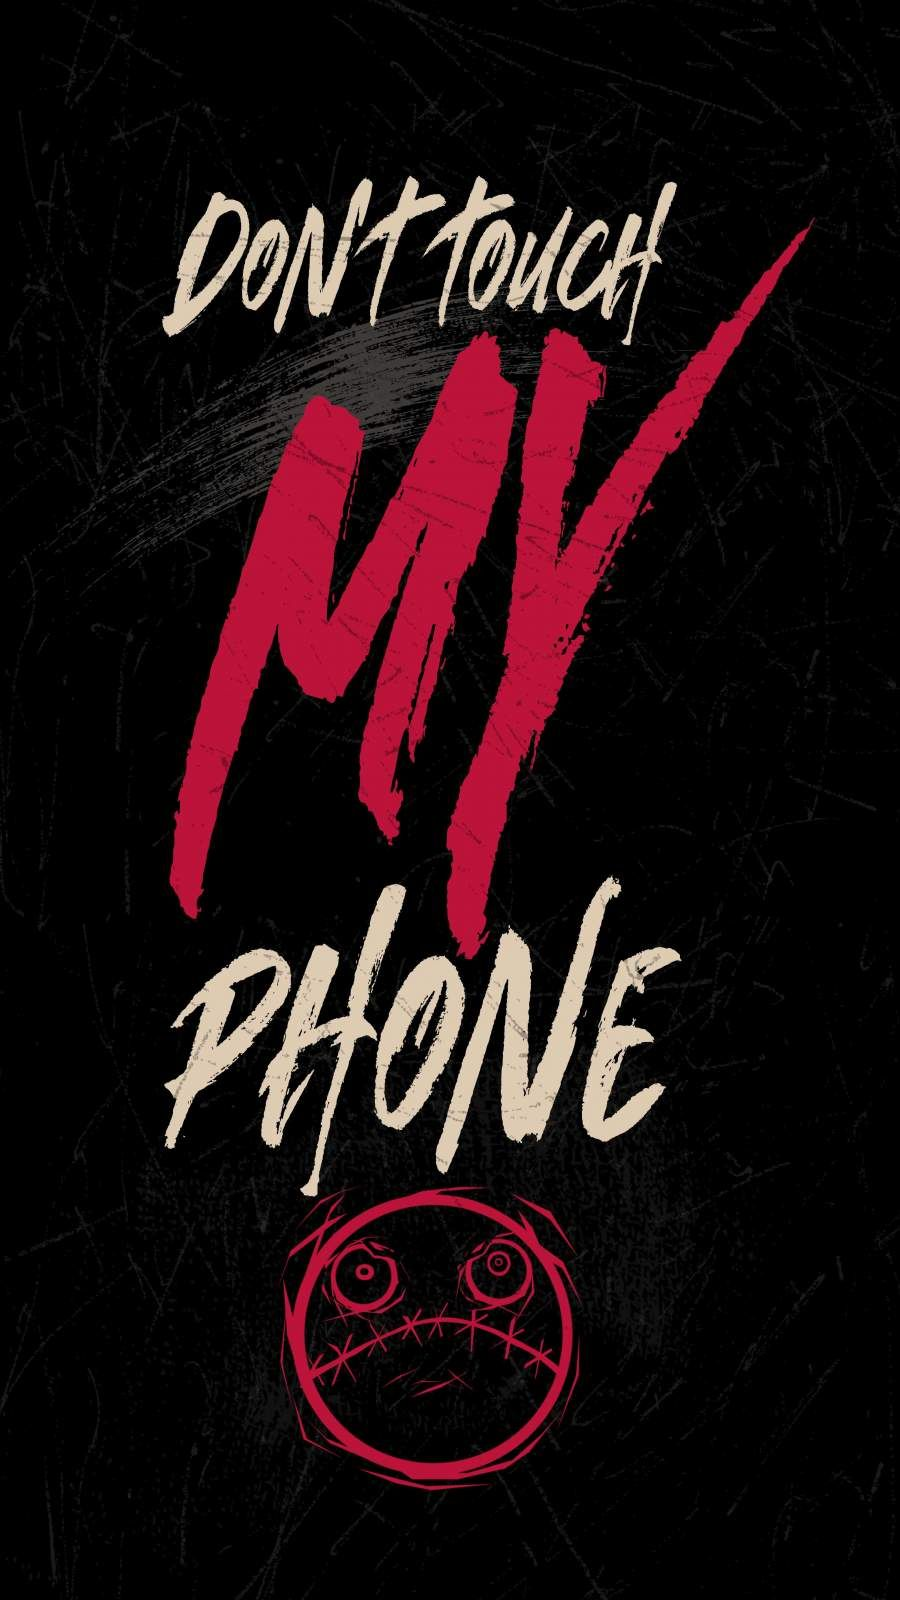 Dont Touch My Phone Iphone Wallpaper In 2020 Dont Touch My Phone Wallpapers Joker Iphone Wallpaper Black Phone Wallpaper